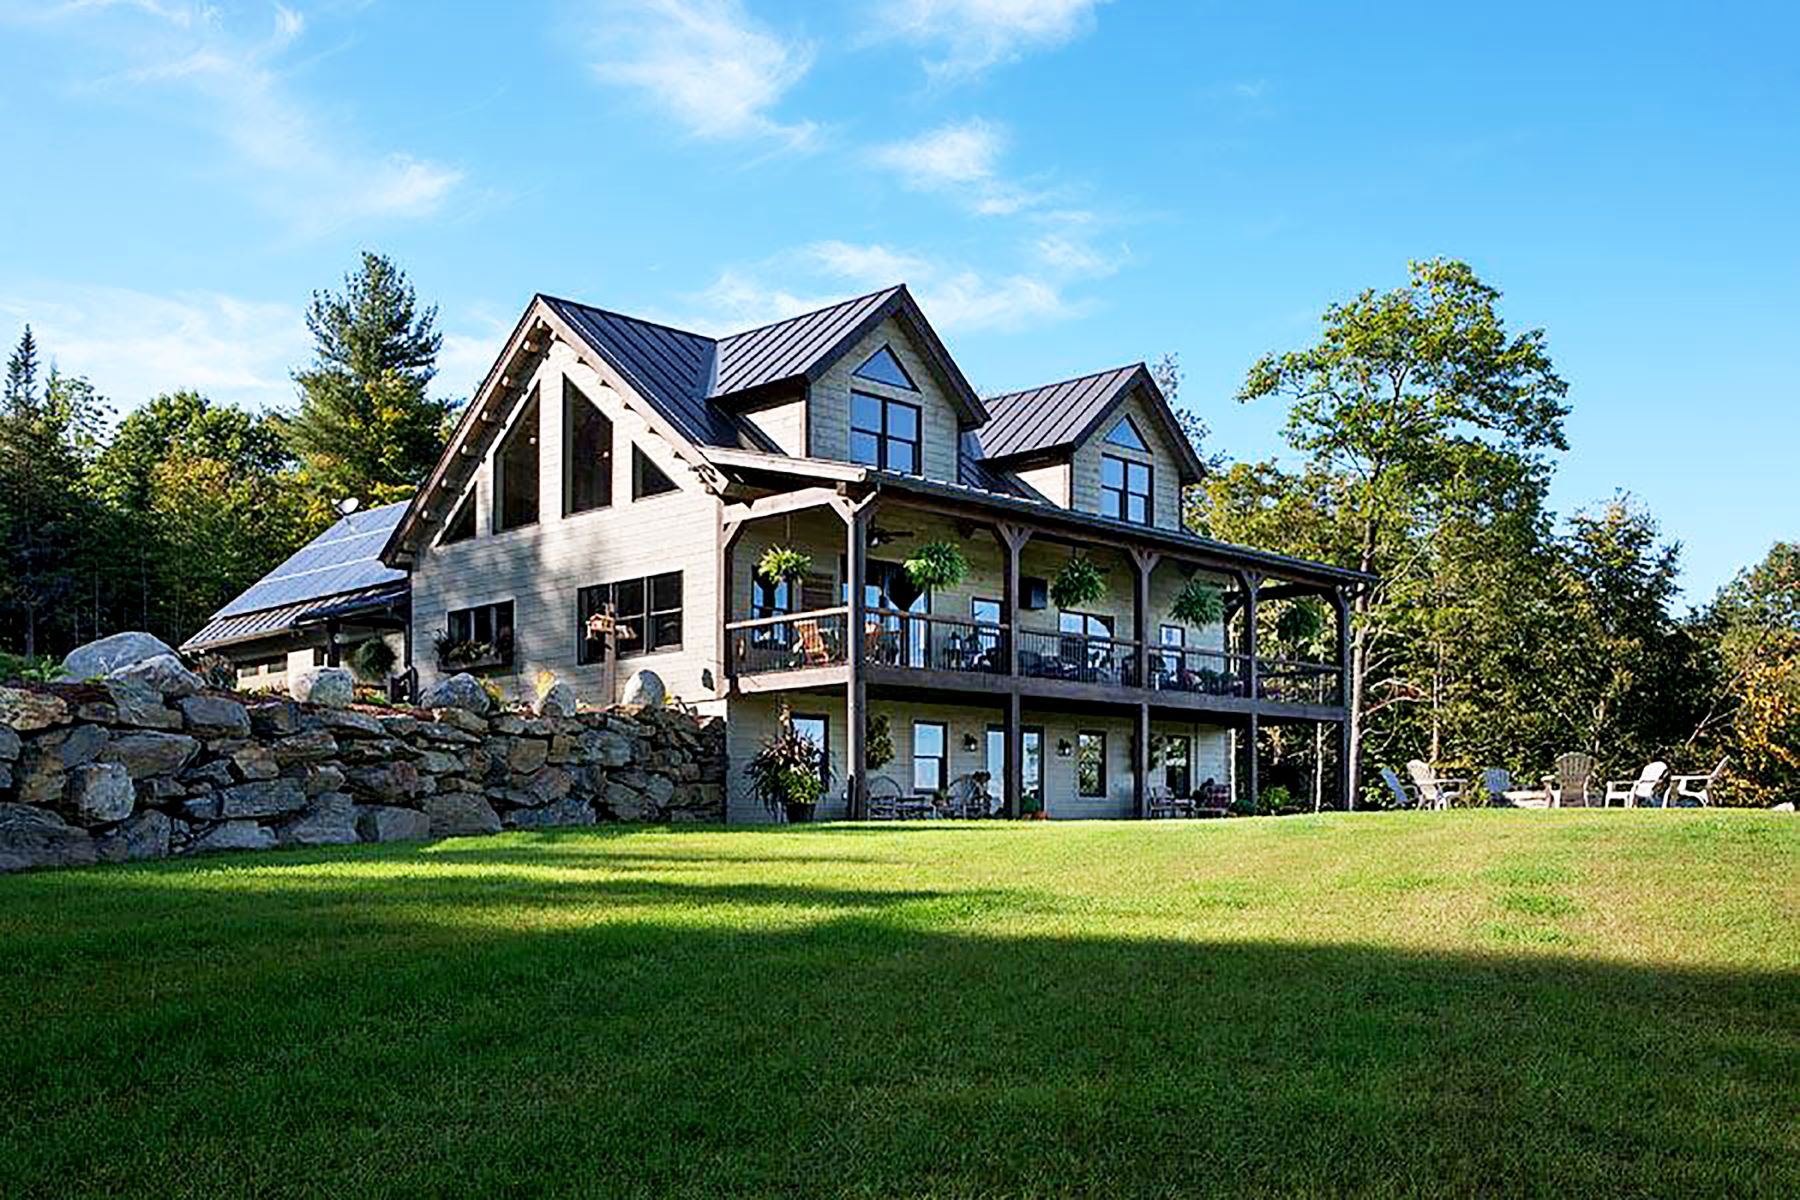 Single Family Homes for Sale at The Boulder 188 Scotch Burn Dr Ryegate, Vermont 05042 United States